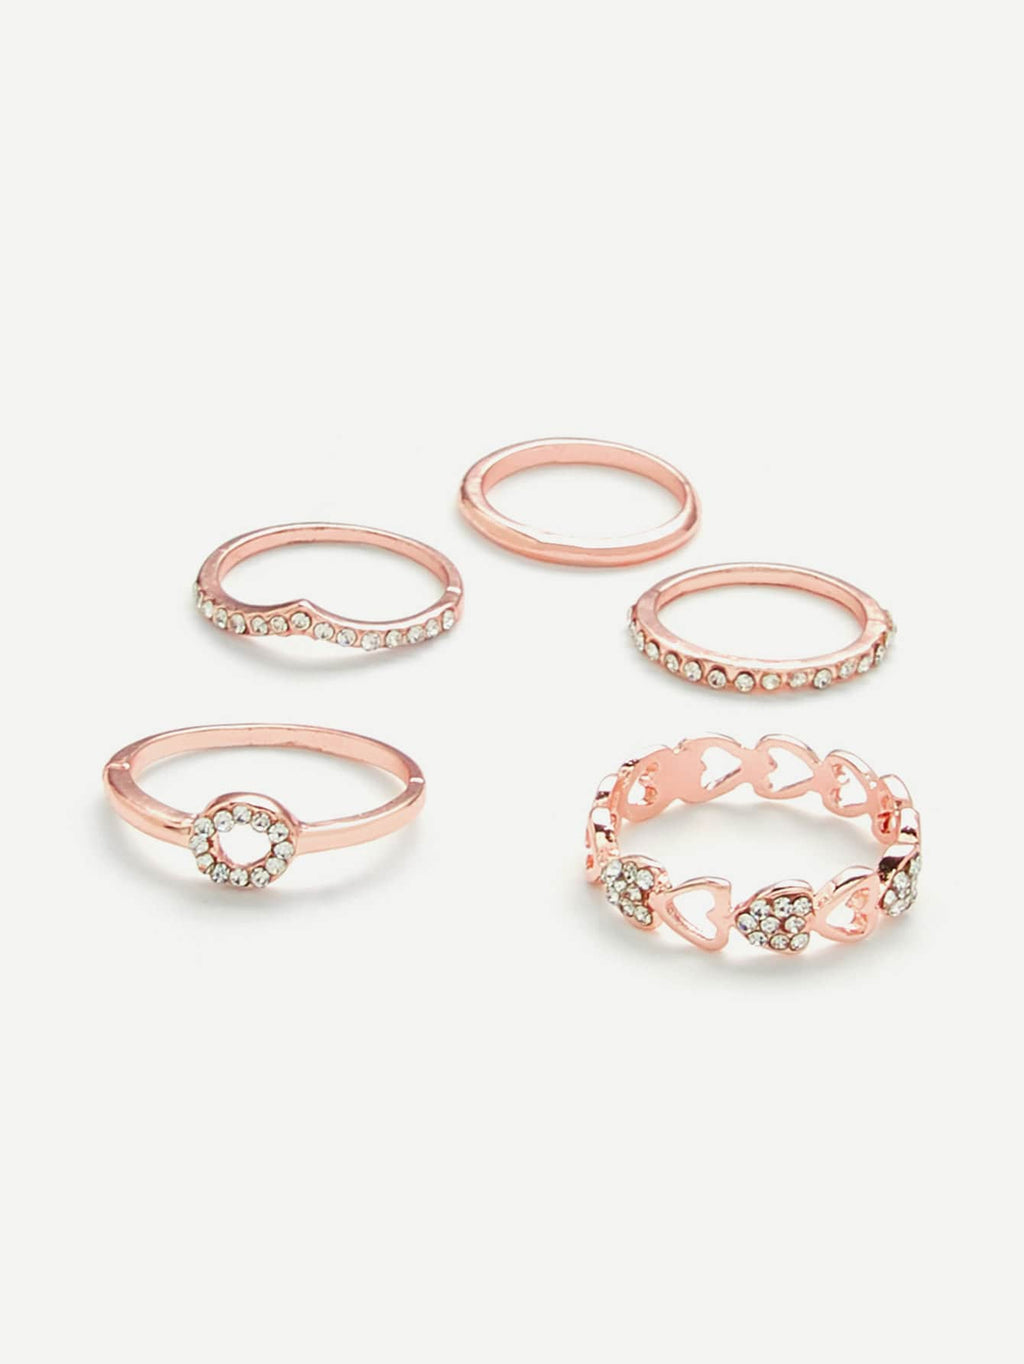 Rings For Women - Heart Design Ring Set With Rhinestone